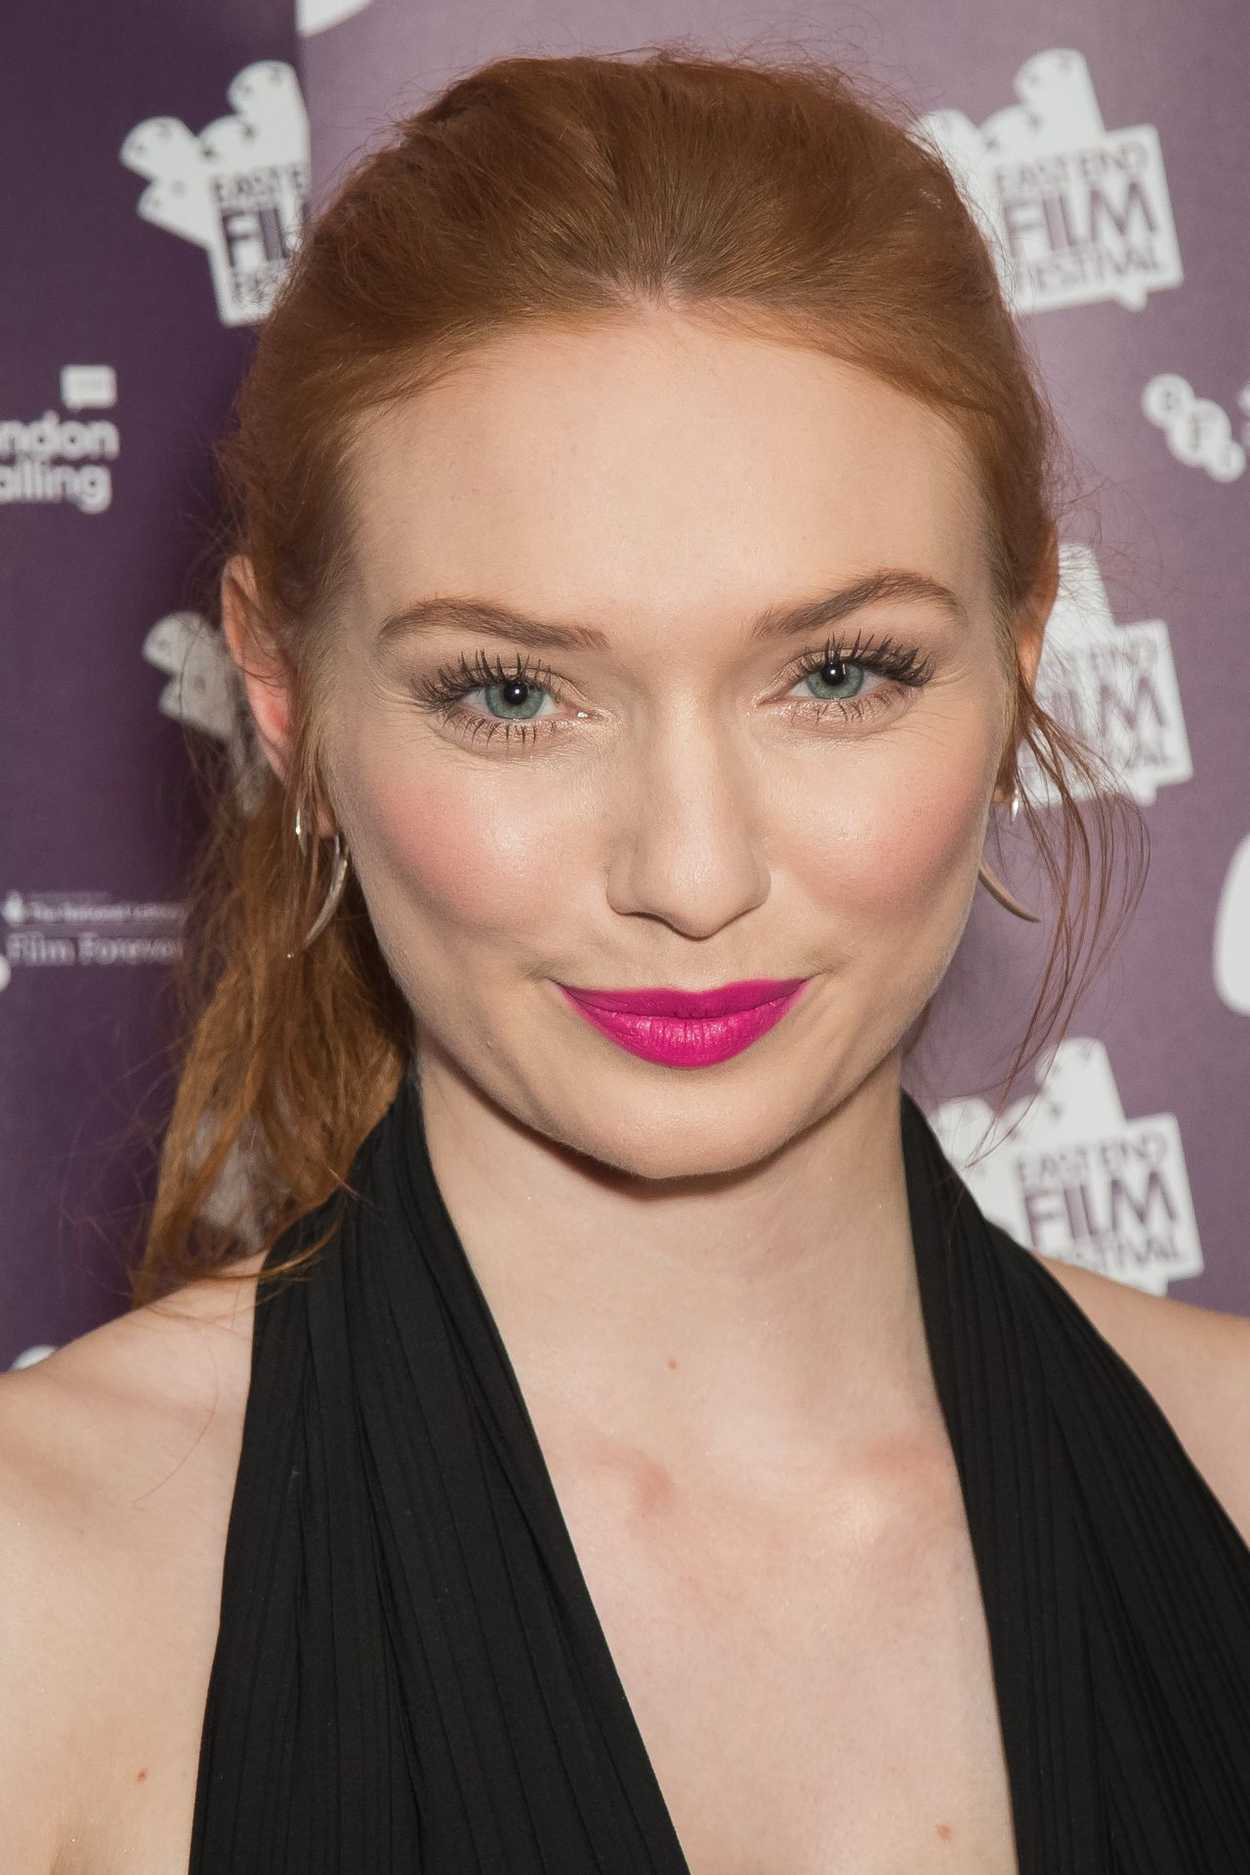 Eleanor Tomlinson nudes (84 fotos) Young, Instagram, braless